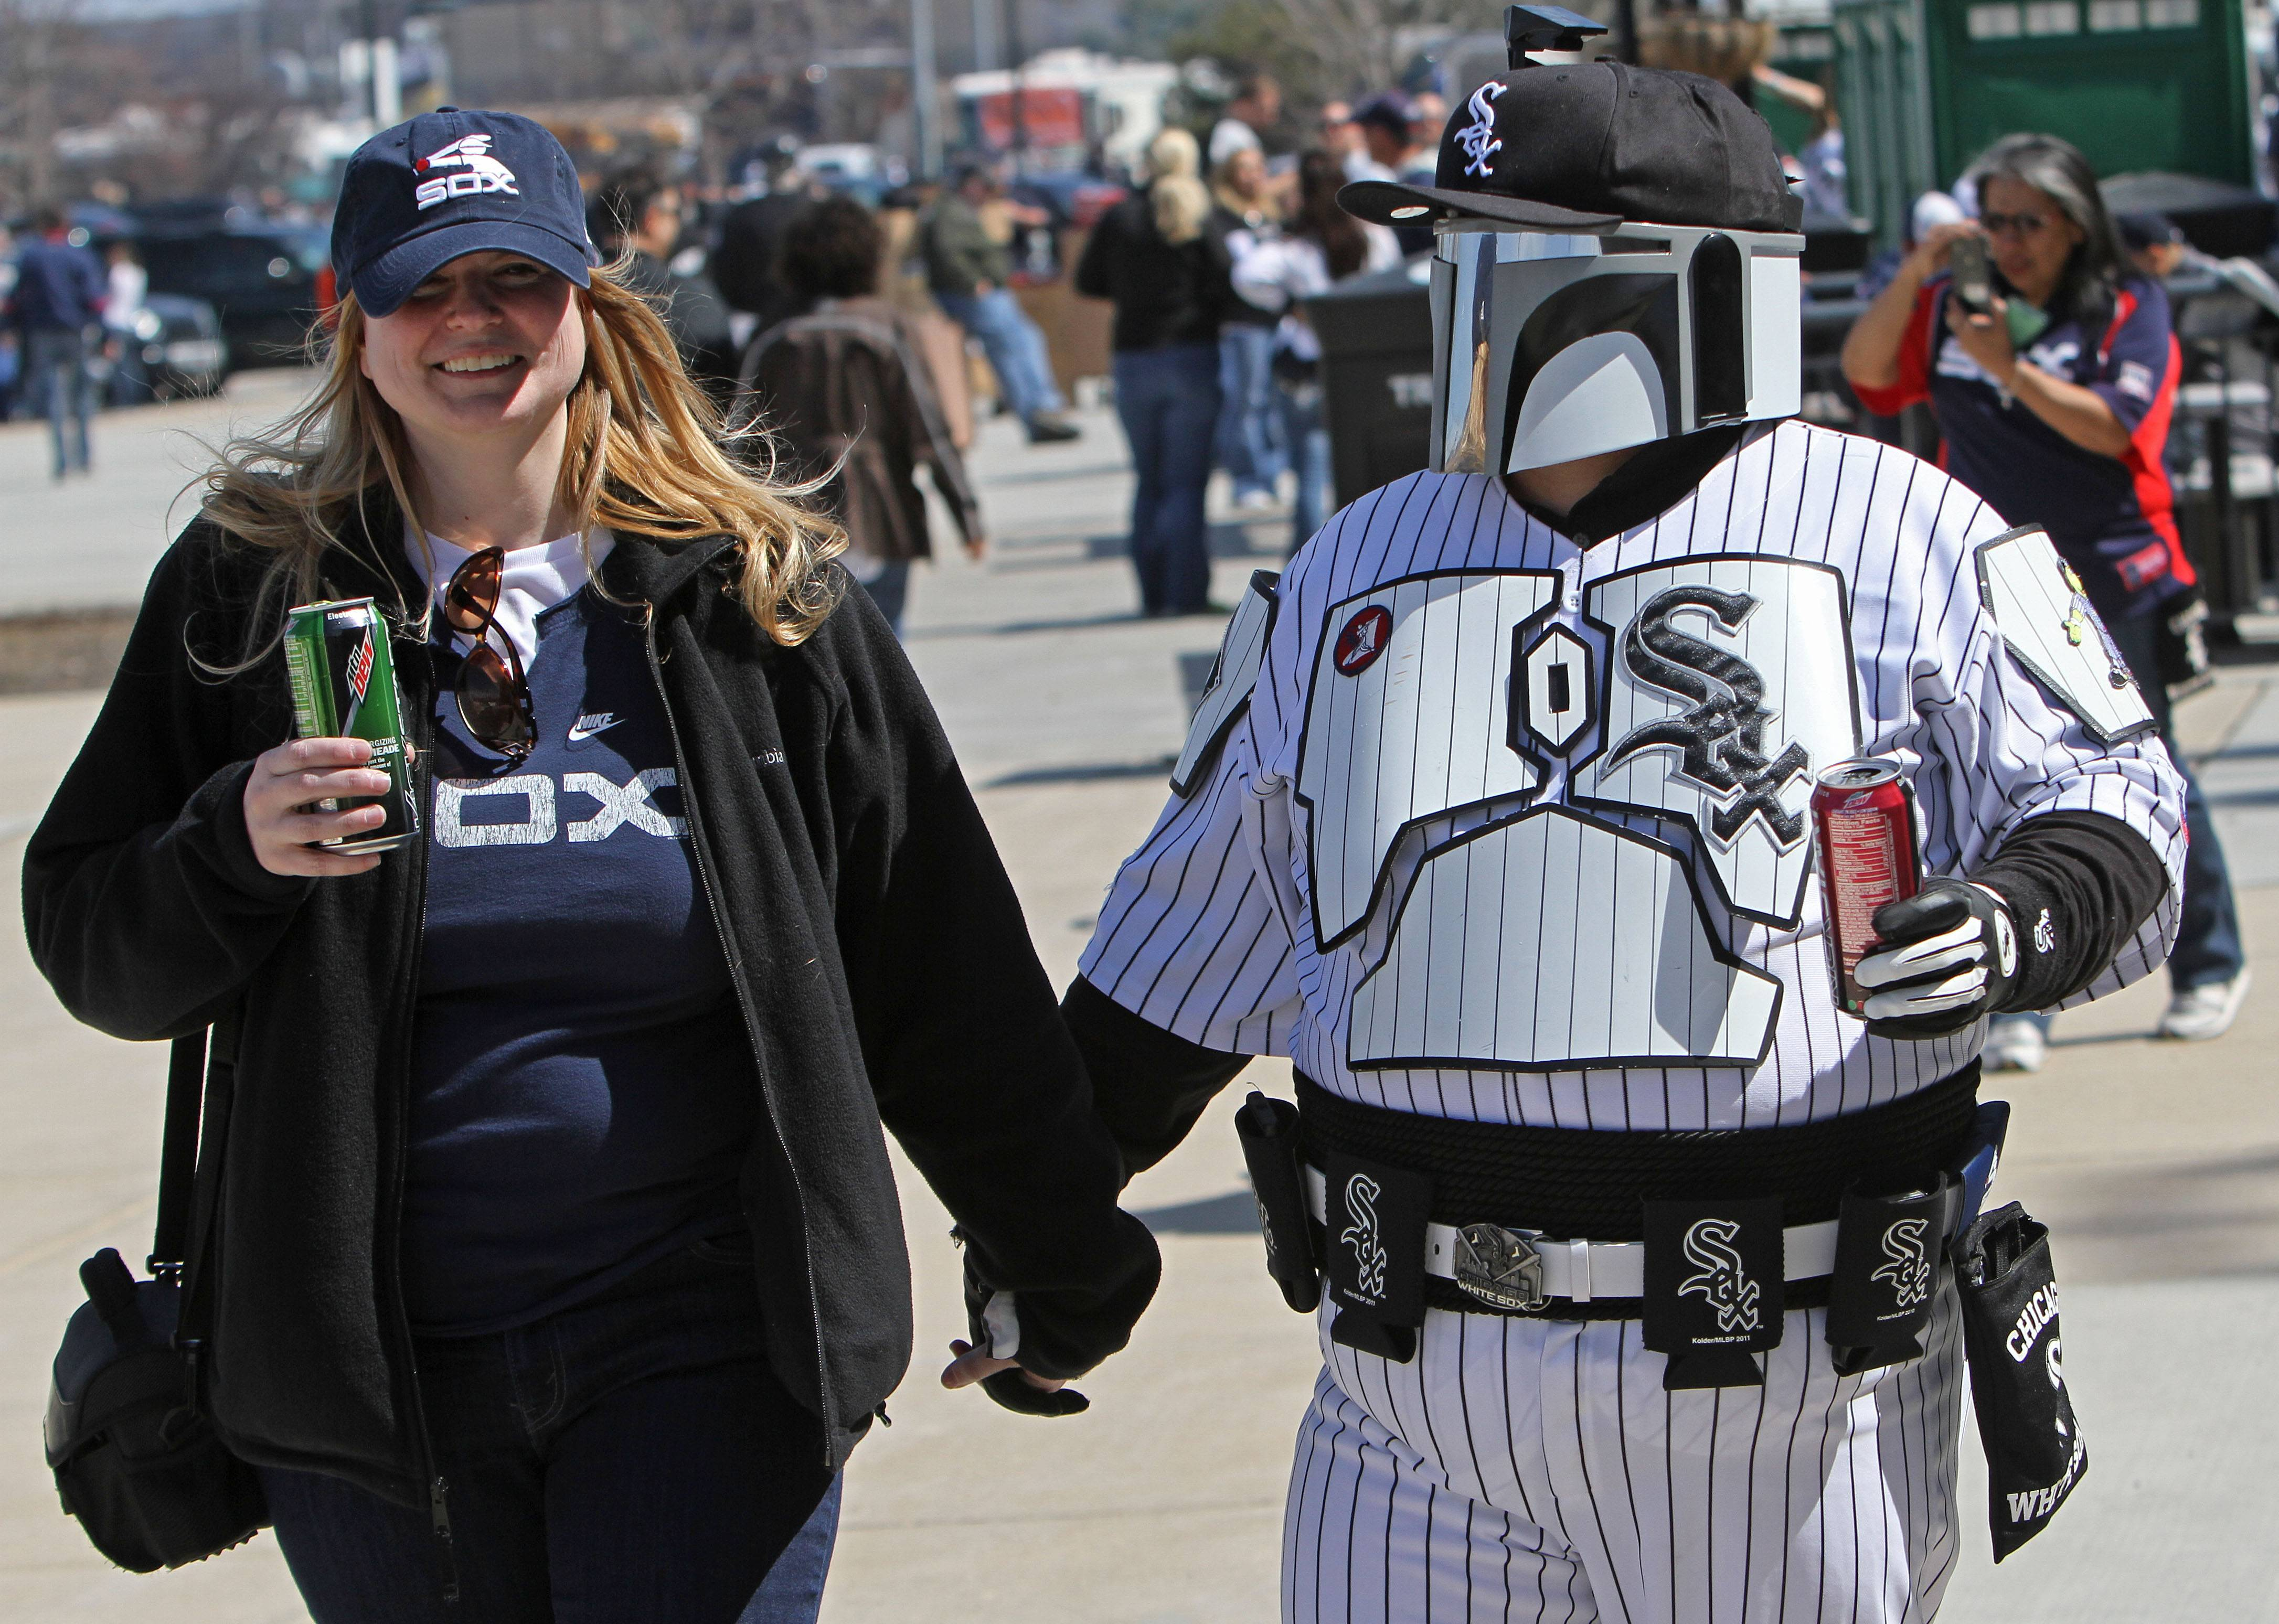 Lisa and Sean Hynes of Naperville walk outside U.S. Cellular Field before the game. Sean's outfit is a cross between Boba Fett of Star Wars and Carlton Fisk.